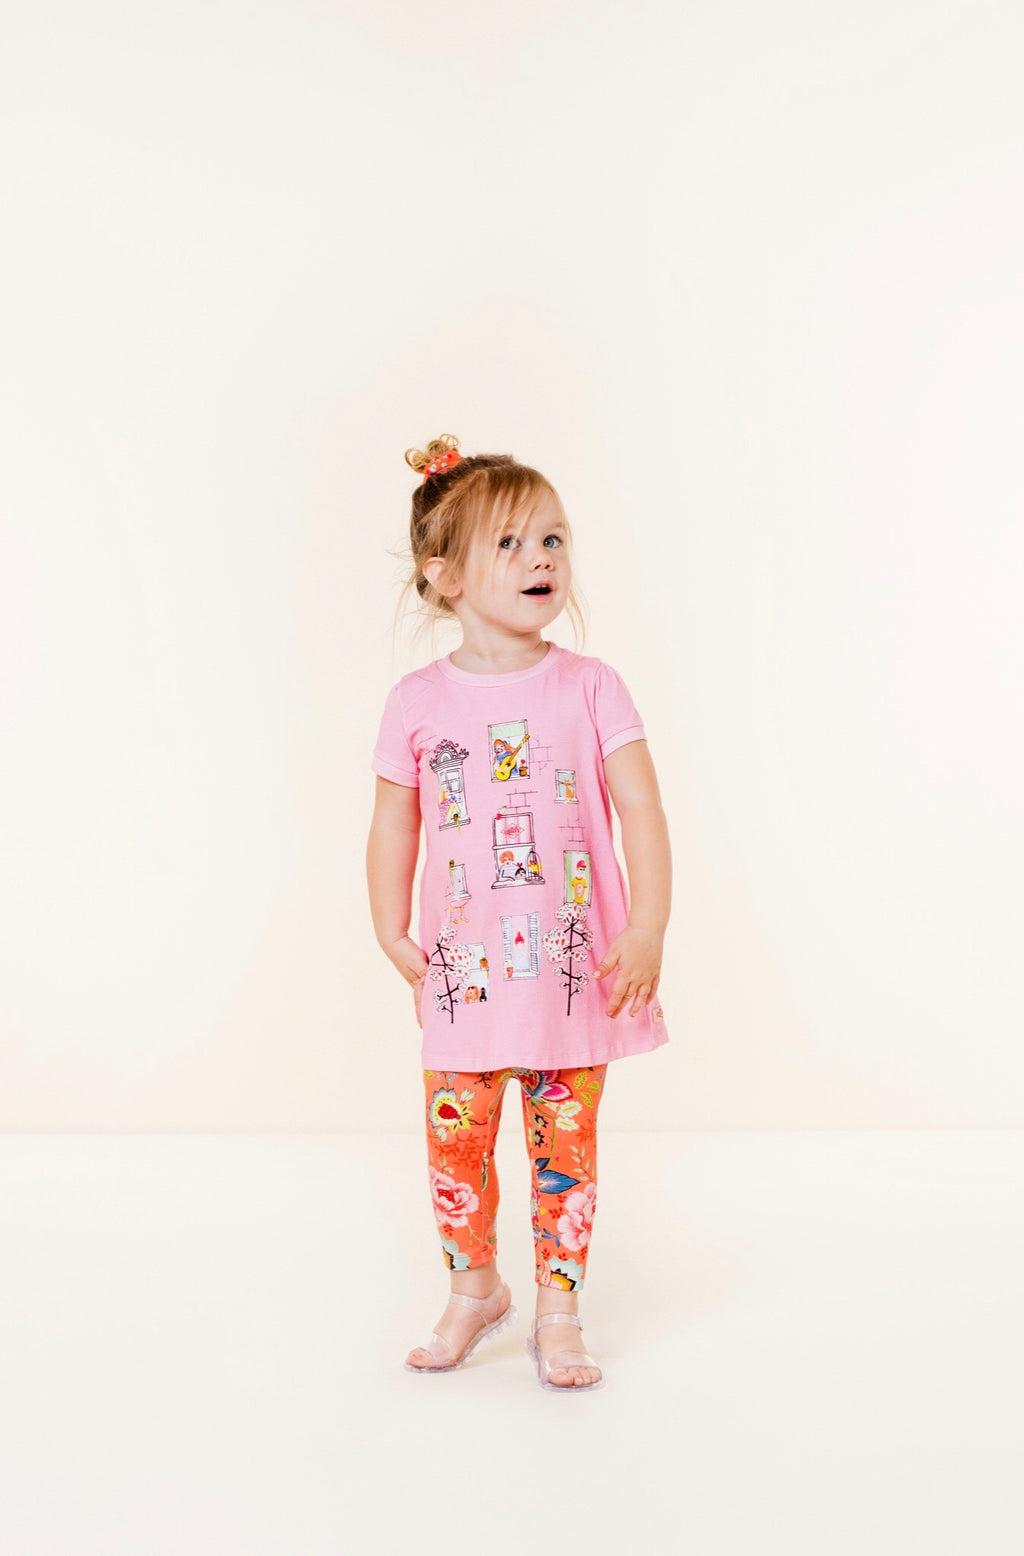 SS20 Oilily Girls Thehouse Pink Windows Jersey Dress 32